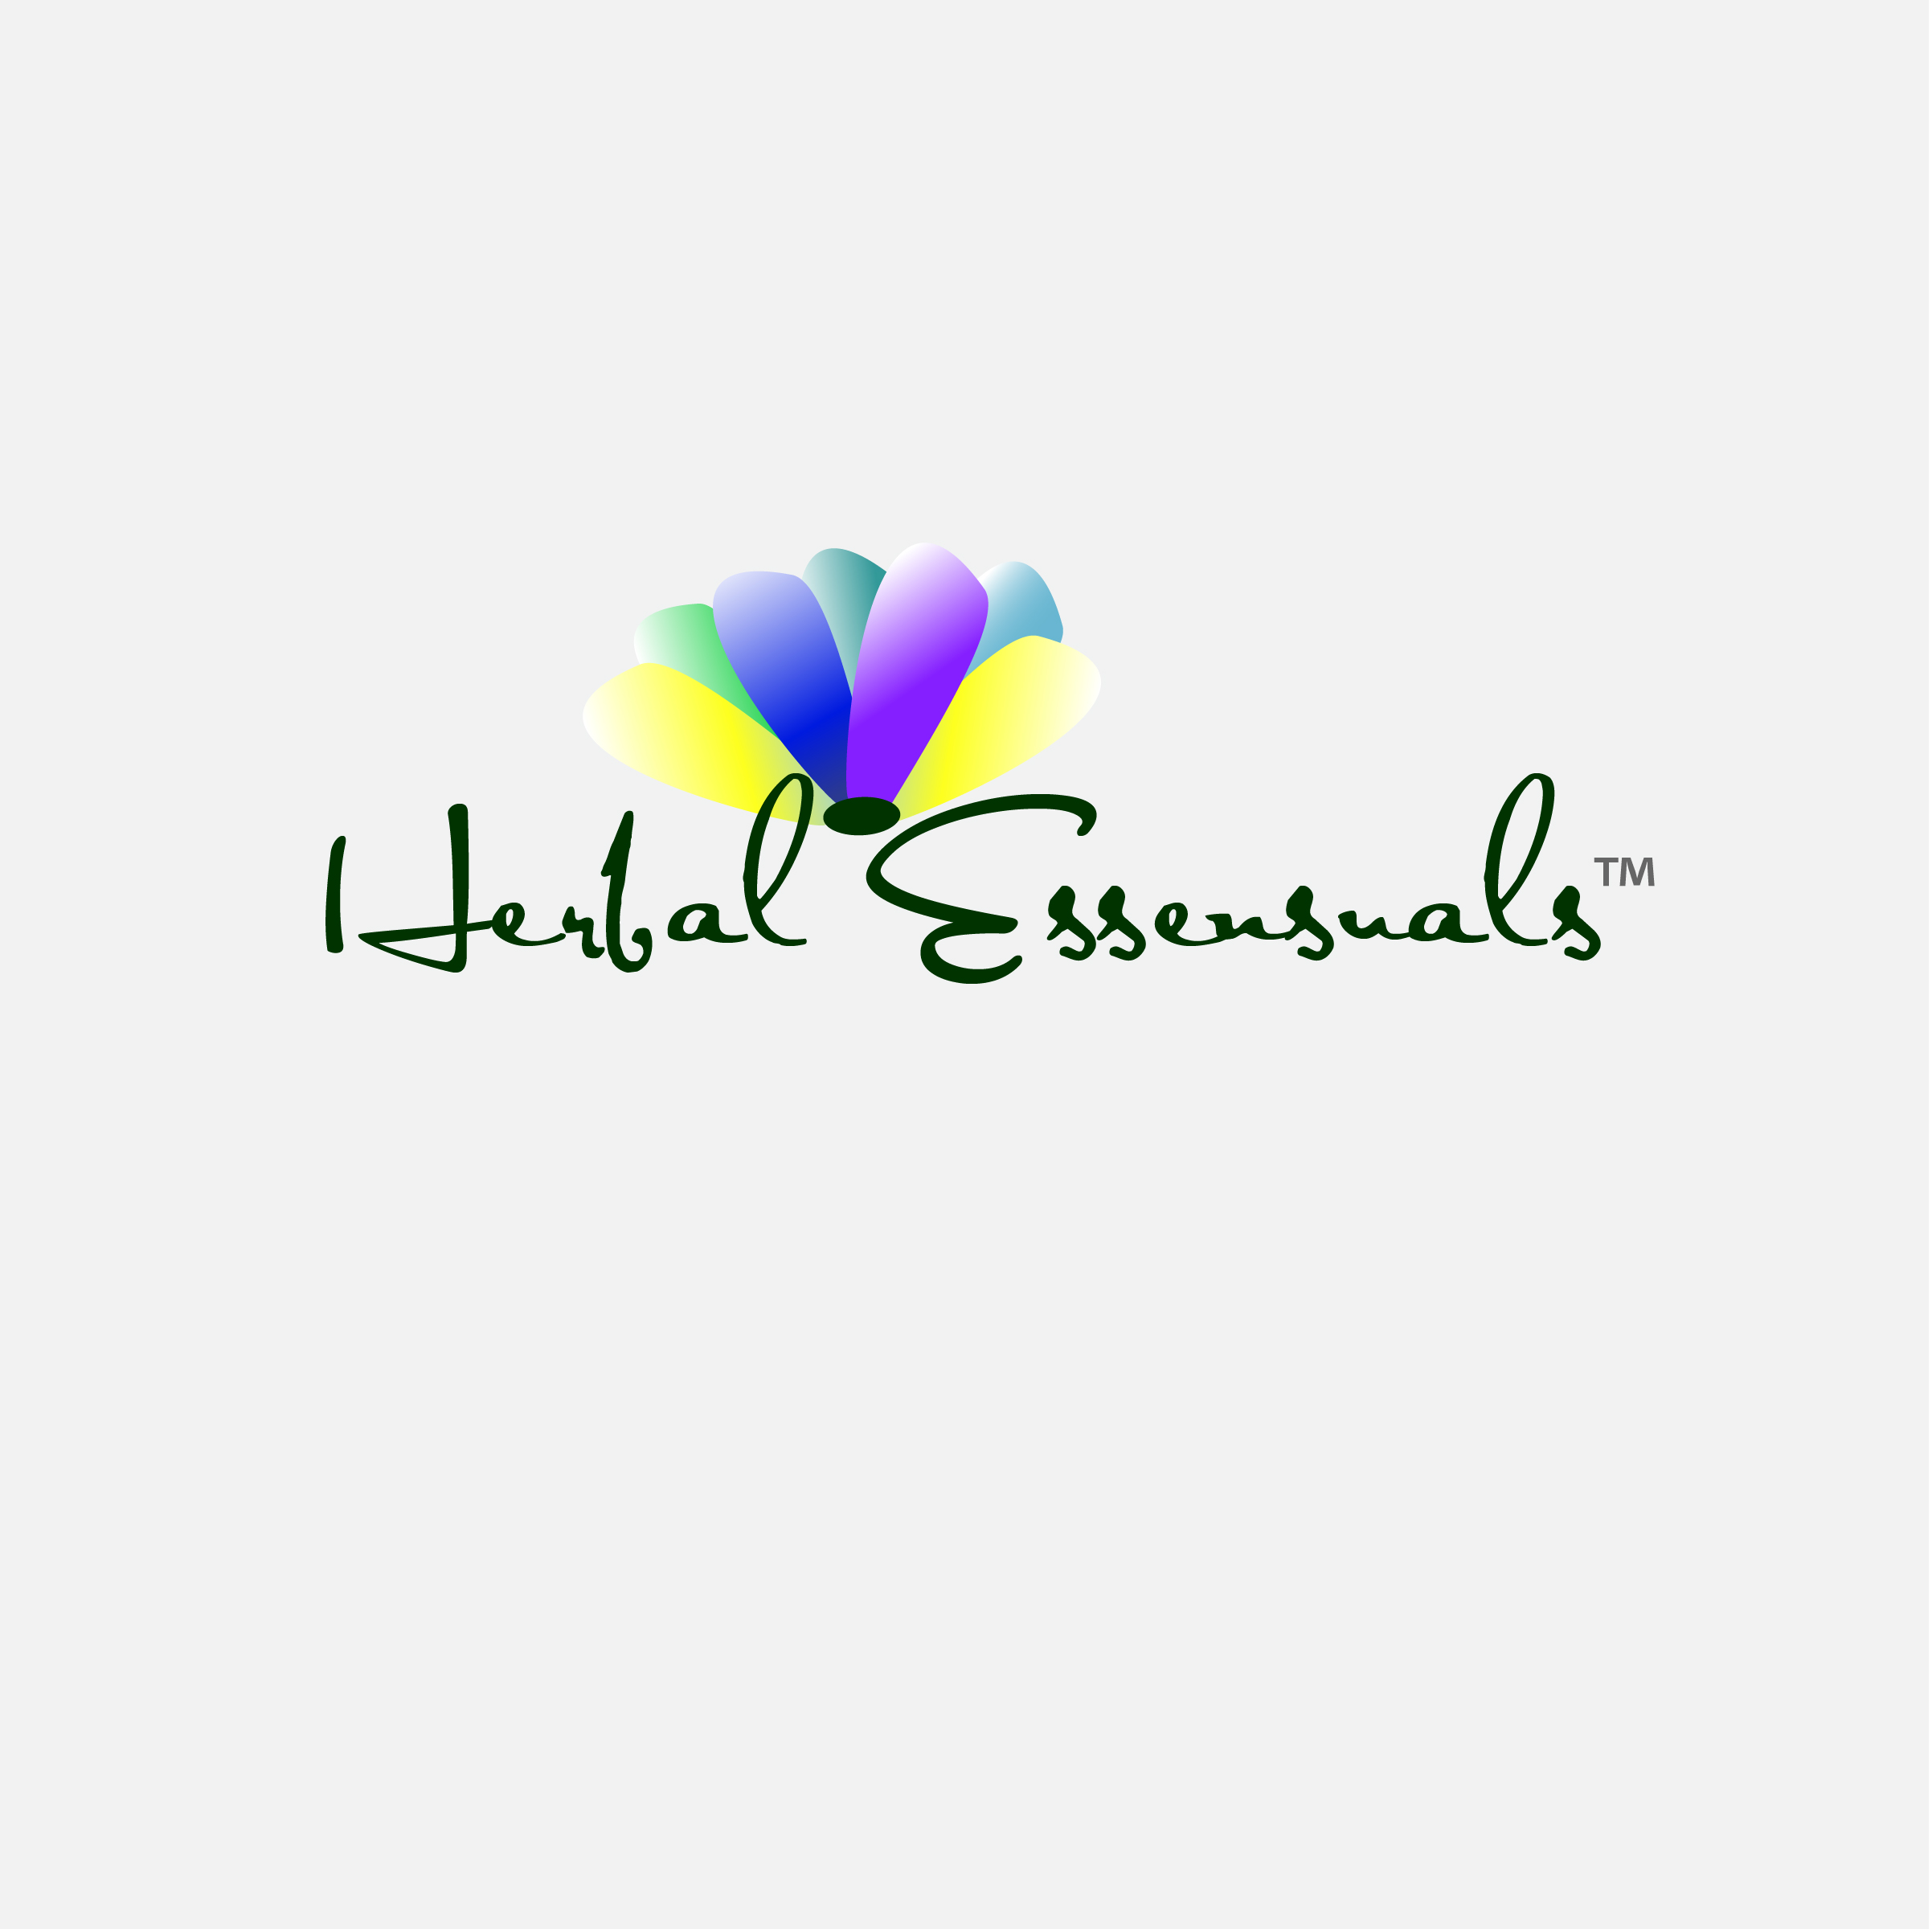 Logo Design by Nancy Grant - Entry No. 128 in the Logo Design Contest Captivating Logo Design for Herbal Essensuals.